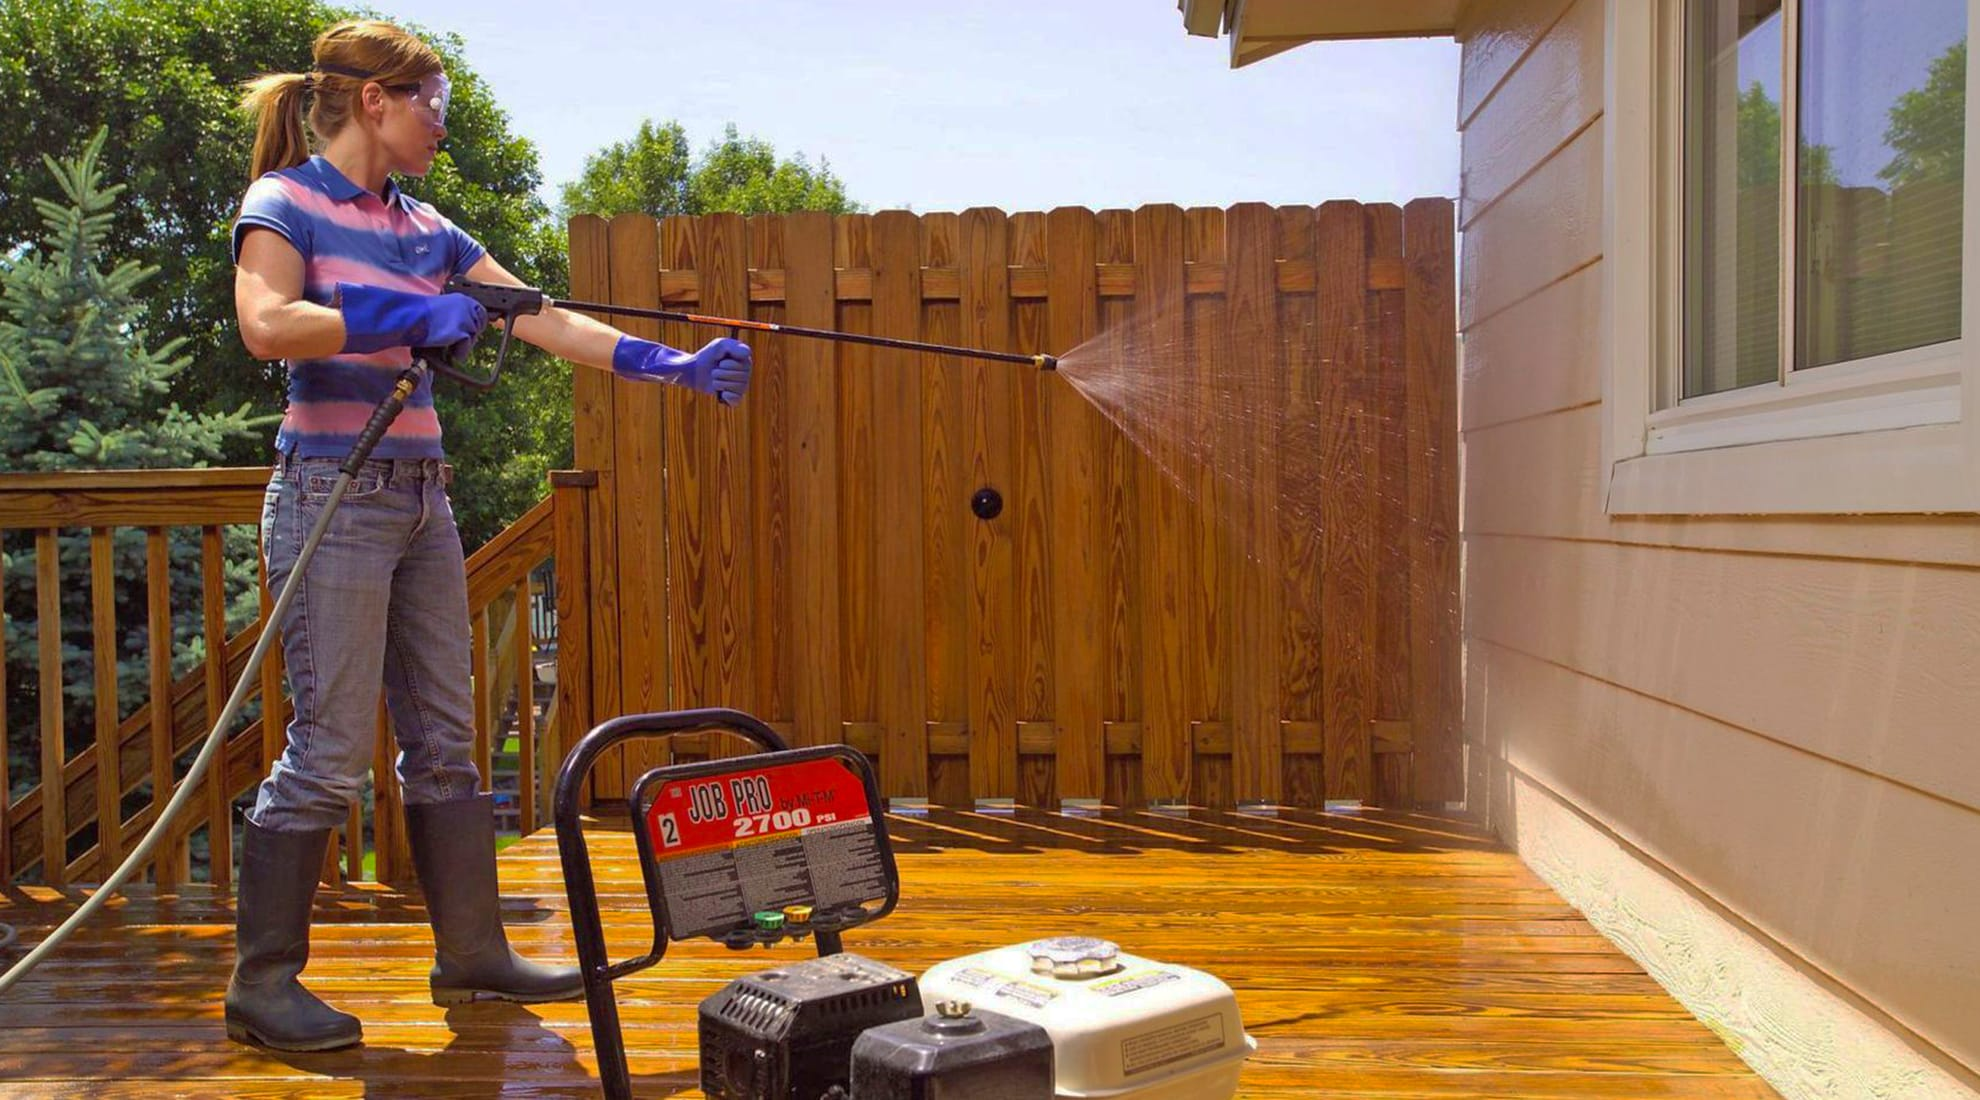 Power washing your home's exterior freshens up finishes and can show you where new coat of a paint is needed.